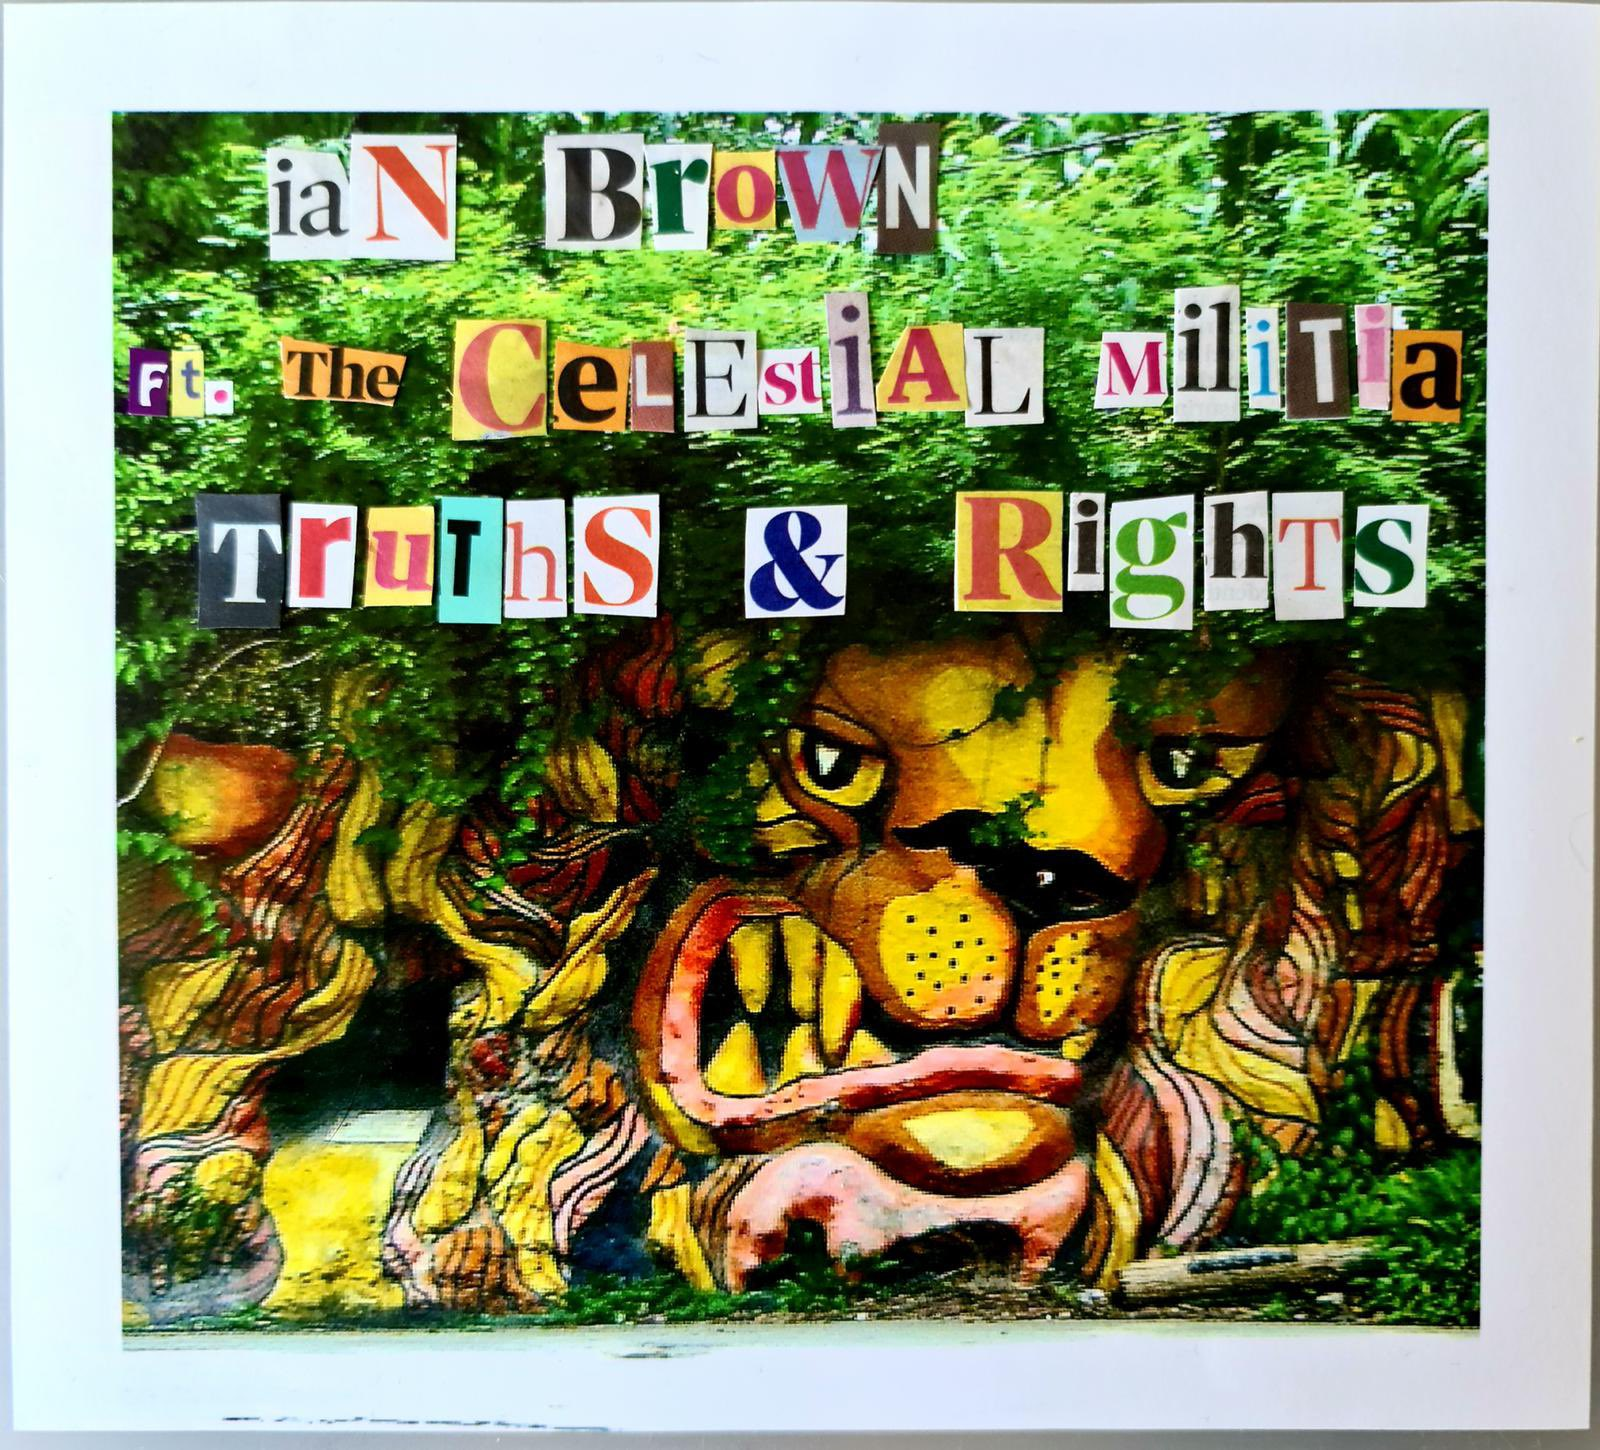 News – Ian Brown – Truths & Rights ft. the Celestial Militia